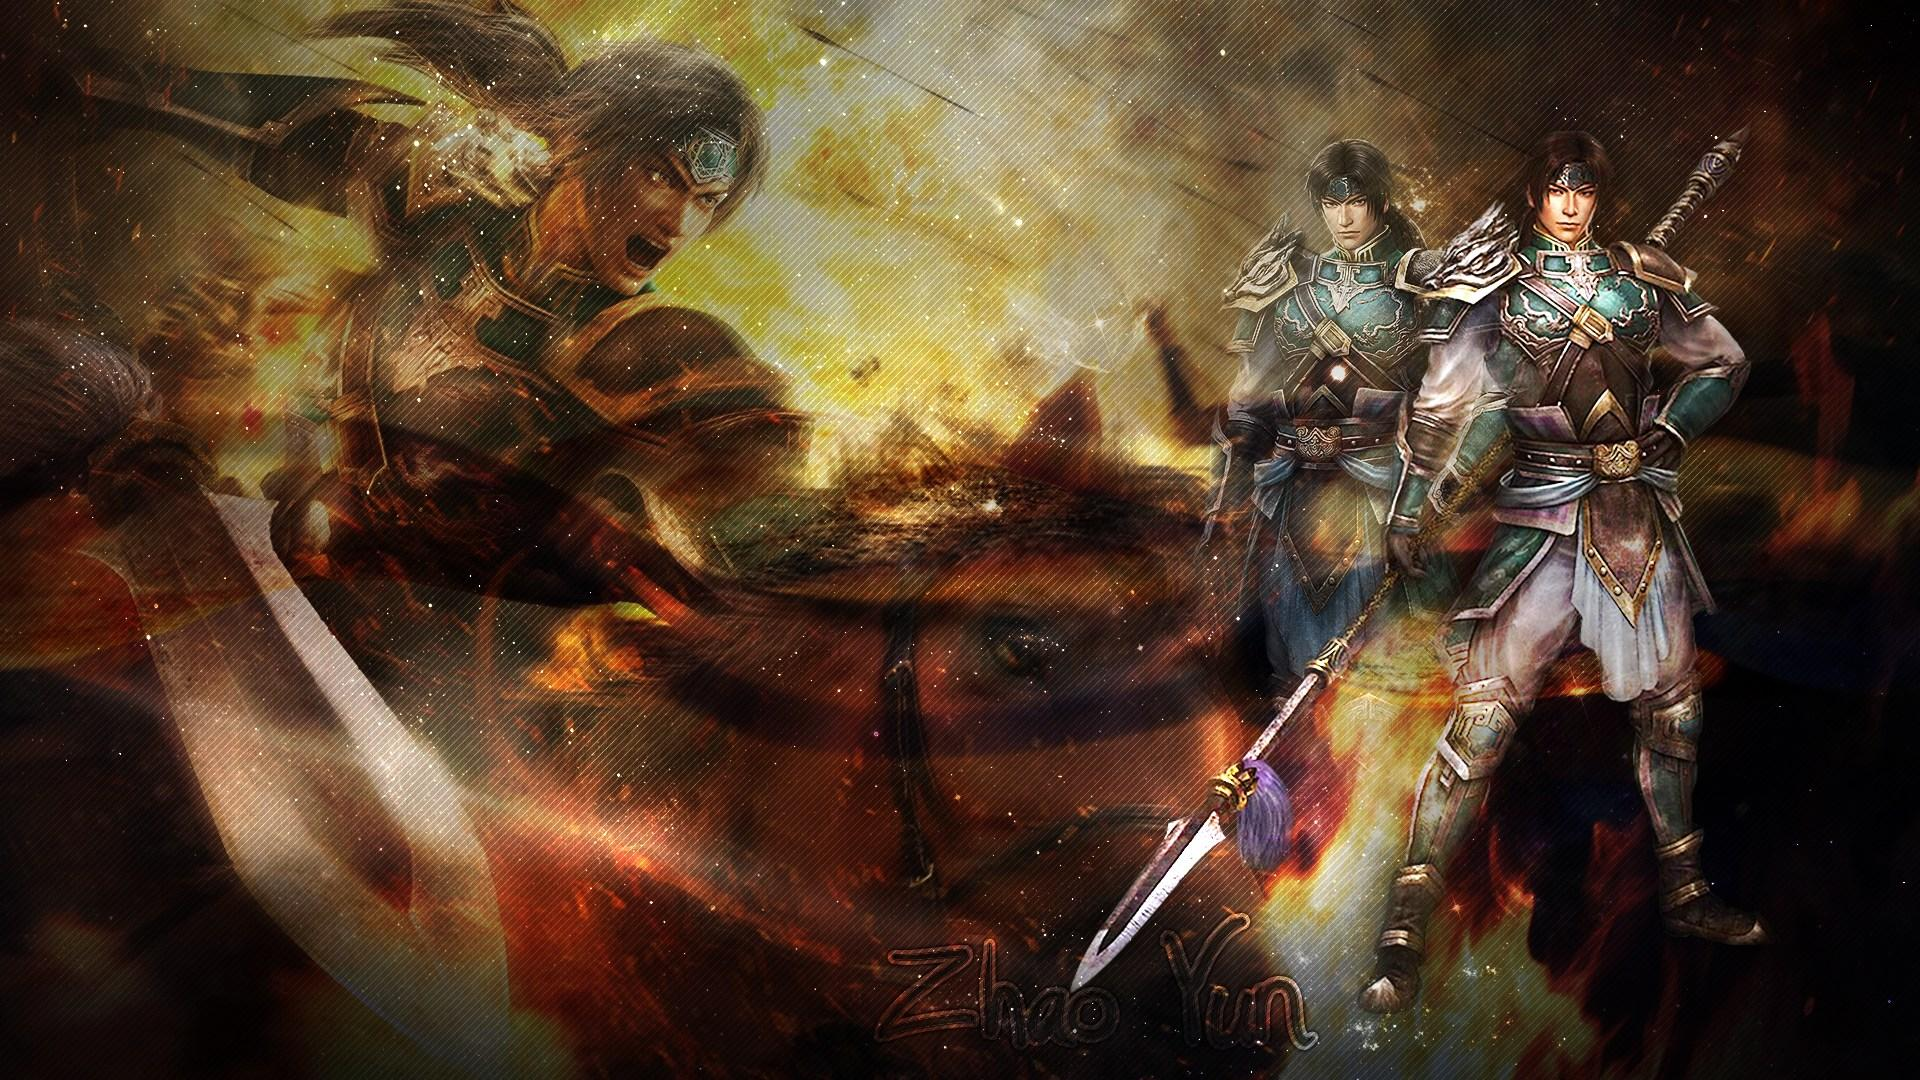 Zhao Yun Wallpapers - Wallpaper Cave